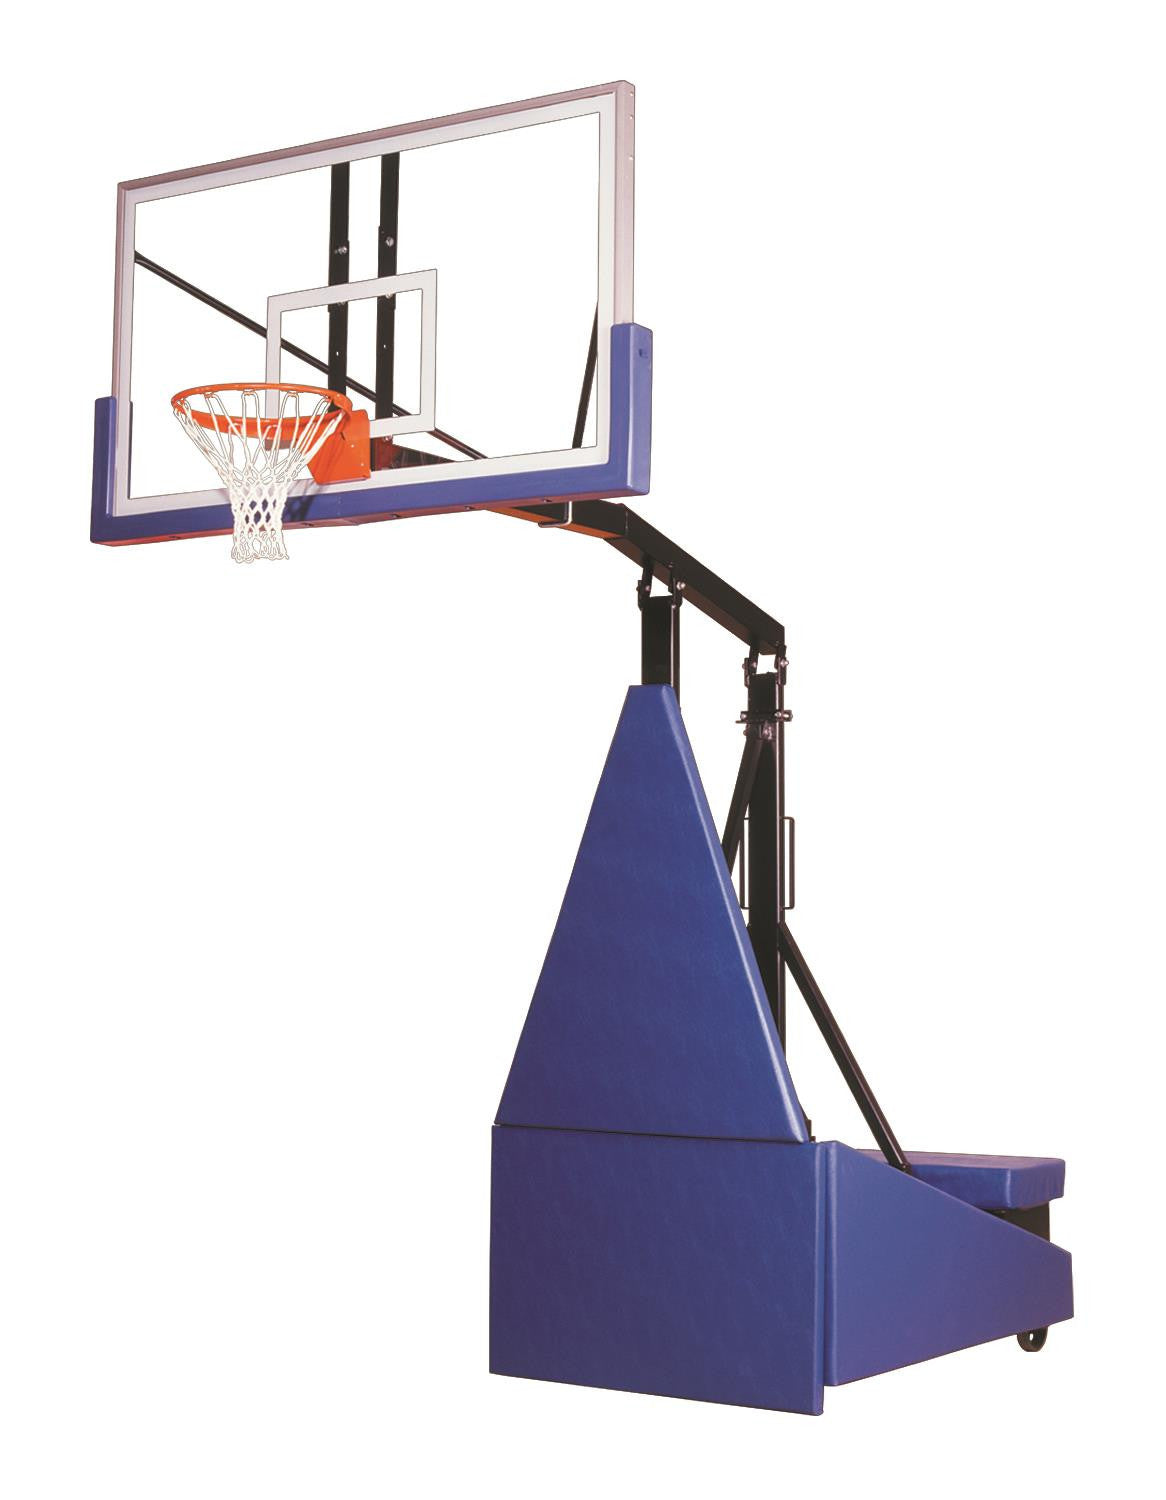 First Team Storm Supreme Portable Adjustable Basketball Hoop 72 inch Acrylic